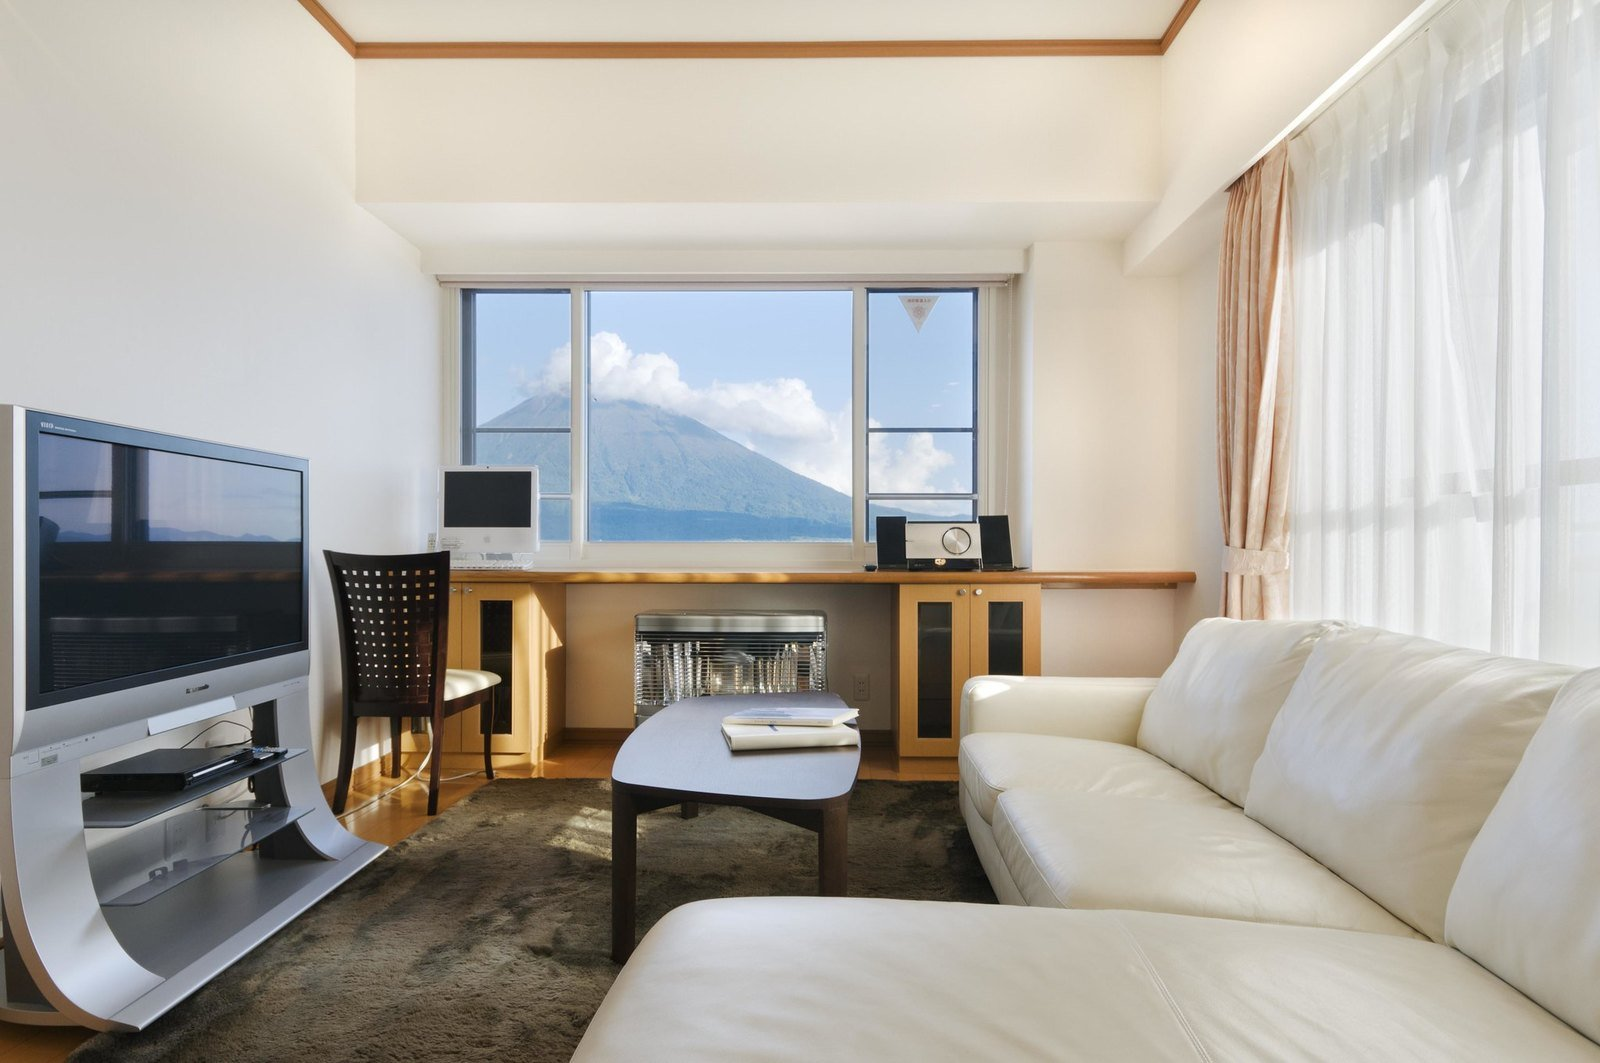 A 2 bedroom Deluxe apartment at Mountainside Palace in Niseko.